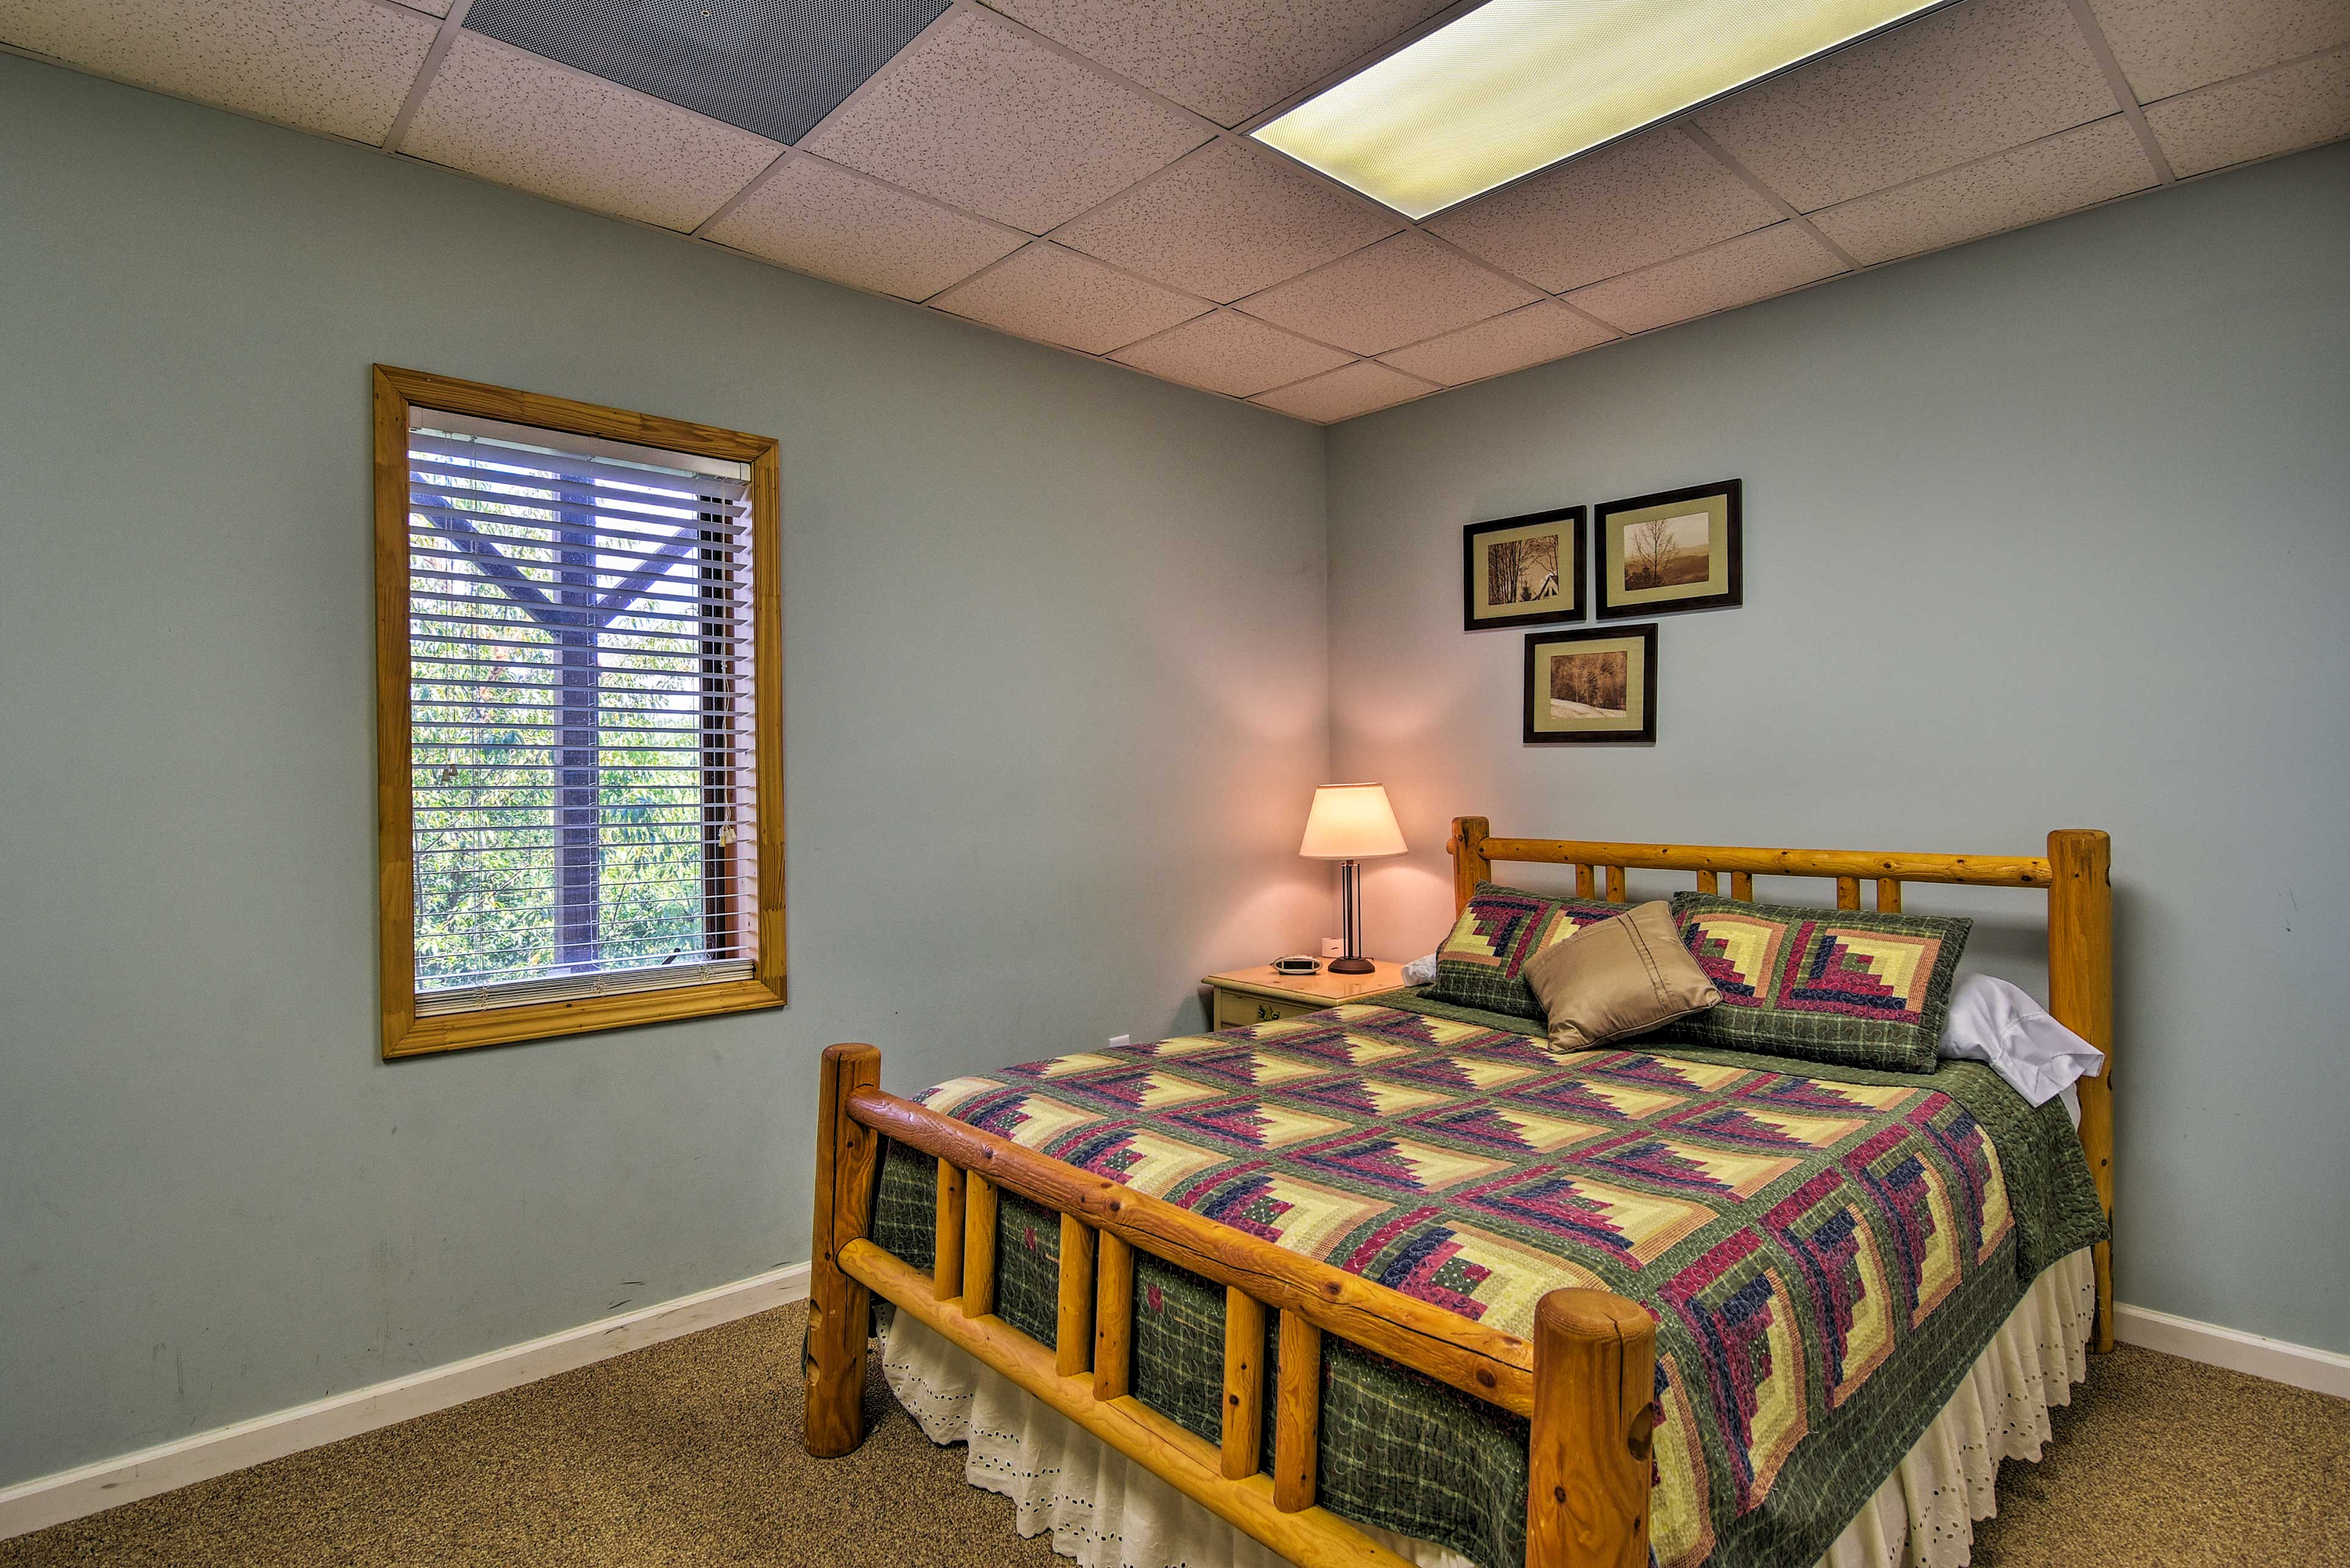 Friends can snag a spot on the queen bed in the third bedroom found downstairs.